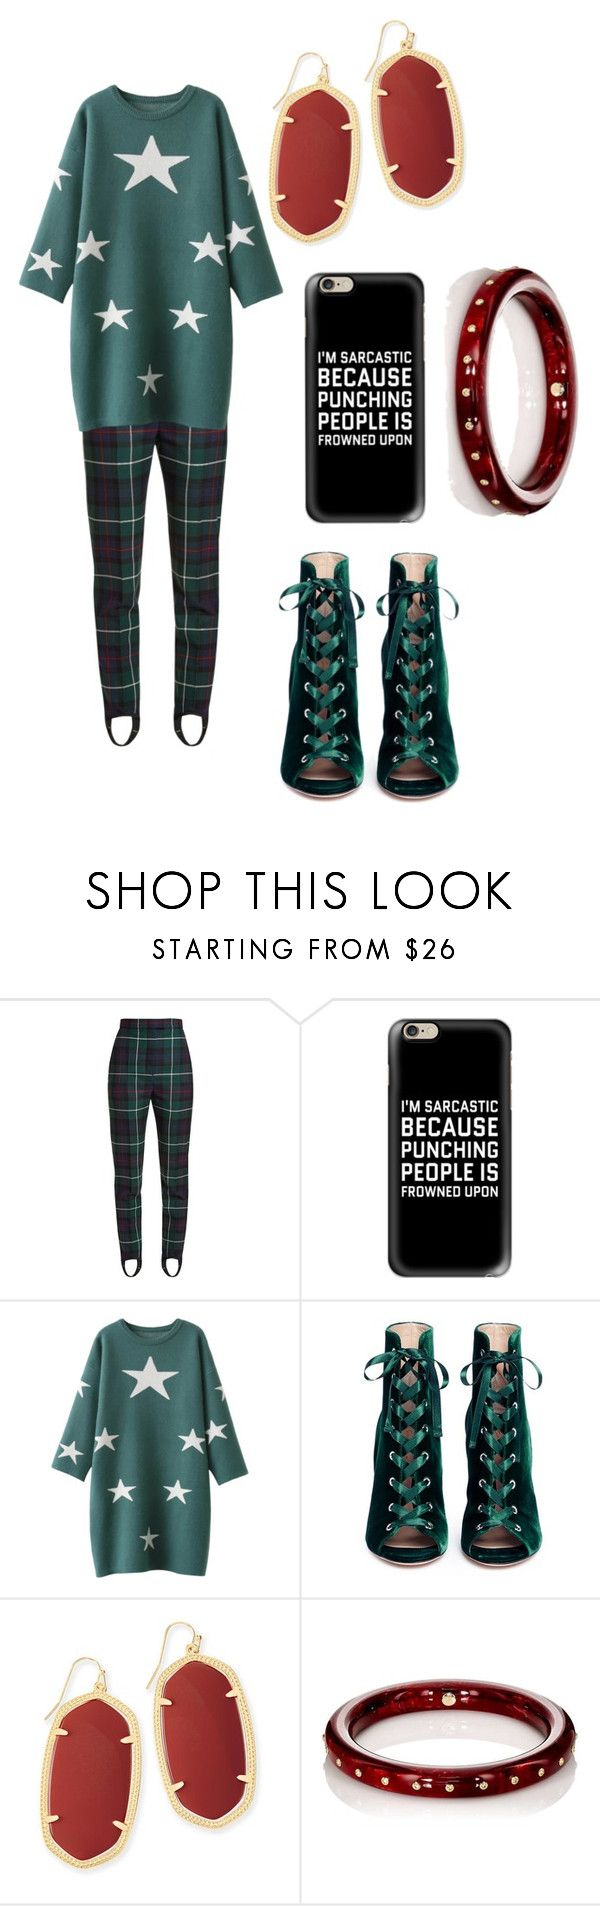 """""""Stirrup Some Trouble #2"""" by aqualyra ❤ liked on Polyvore featuring Burberry, Casetify, Gianvito Rossi, Kendra Scott, Mark Davis, casual, booties, sweaterweather, sweaterdresses and stirrup"""